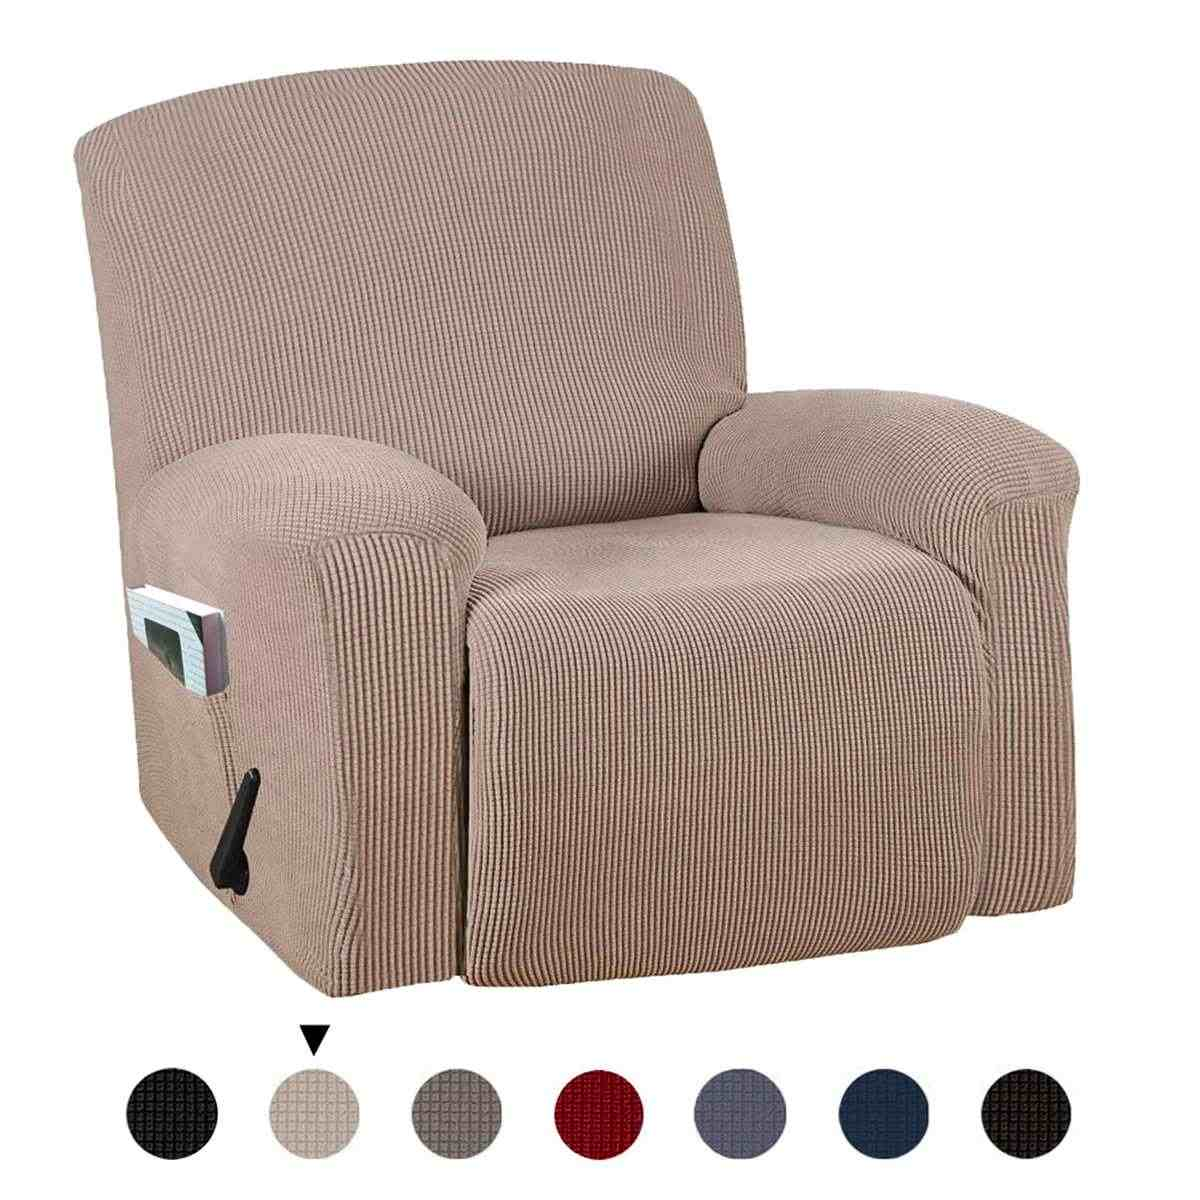 Elastic Recliner Sofa Cover Non slip Chair Cover Removable